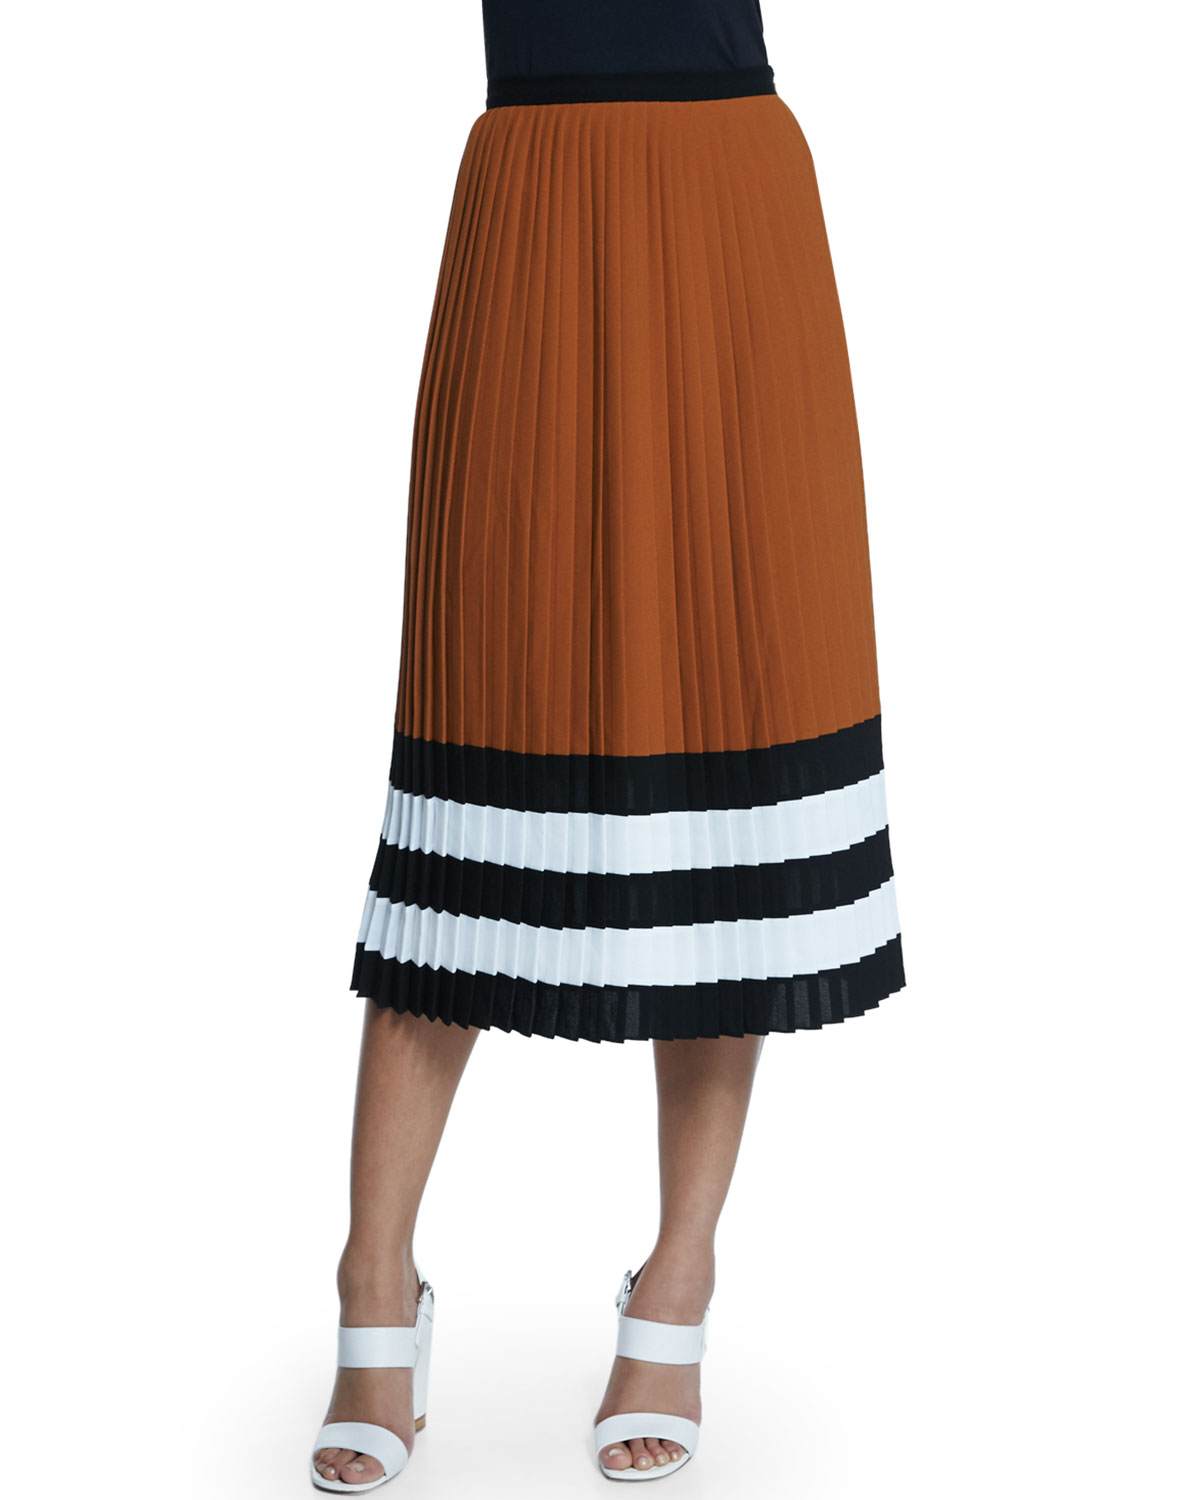 Michael Kors Collection Techno Georgette Pleated Midi Skirt, , Women's, Size: 0 Brown/Gold (Caramel)